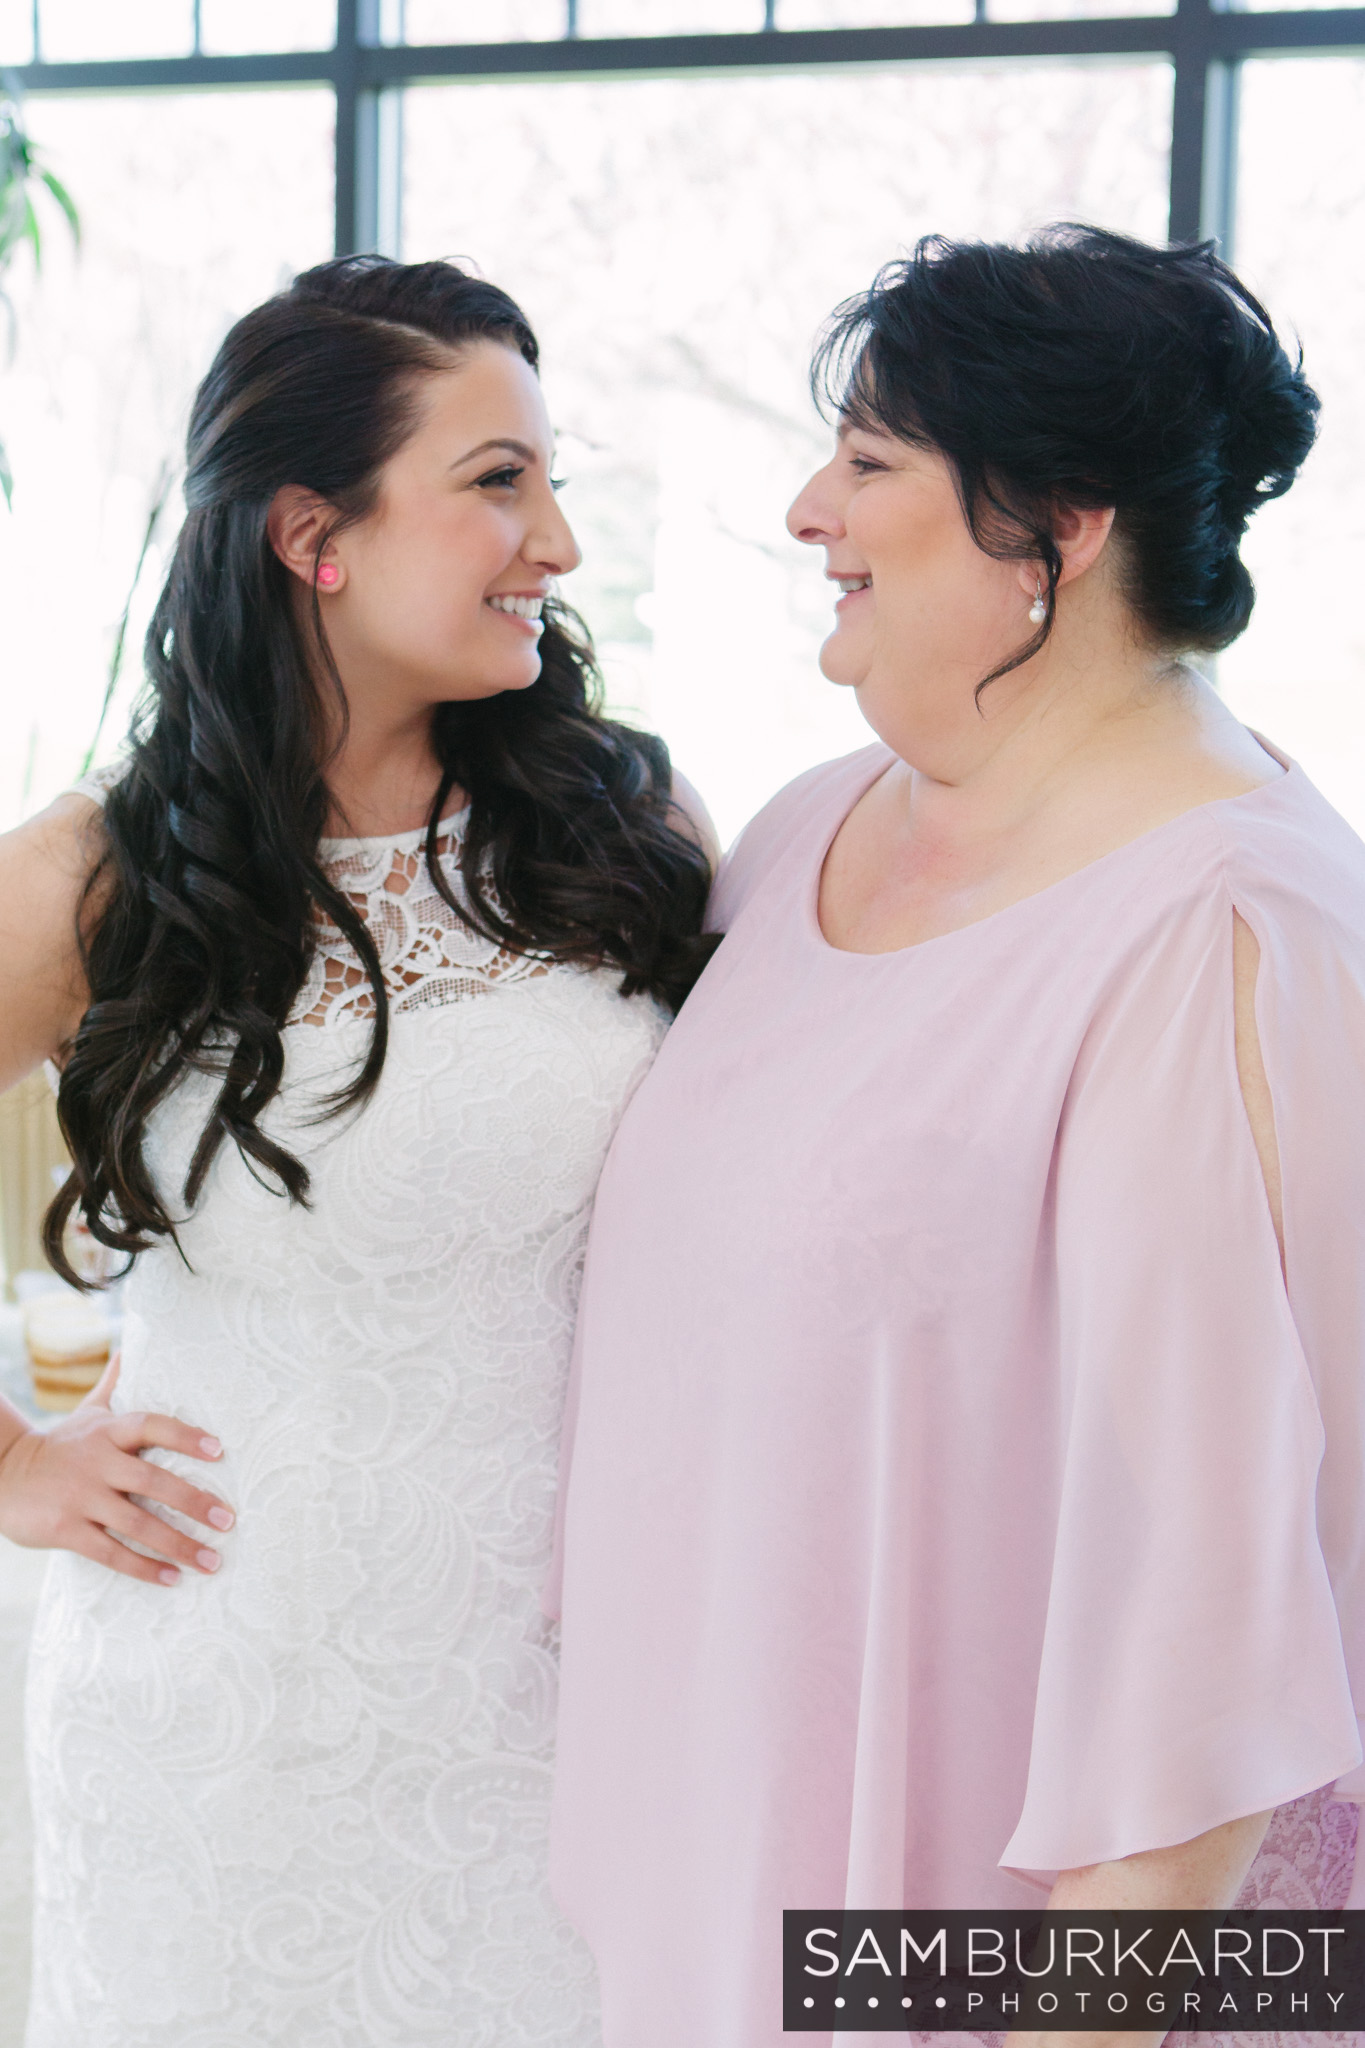 samburkardt_bridal_shower_trumbull_connecticut_photography_wedding_0017.jpg